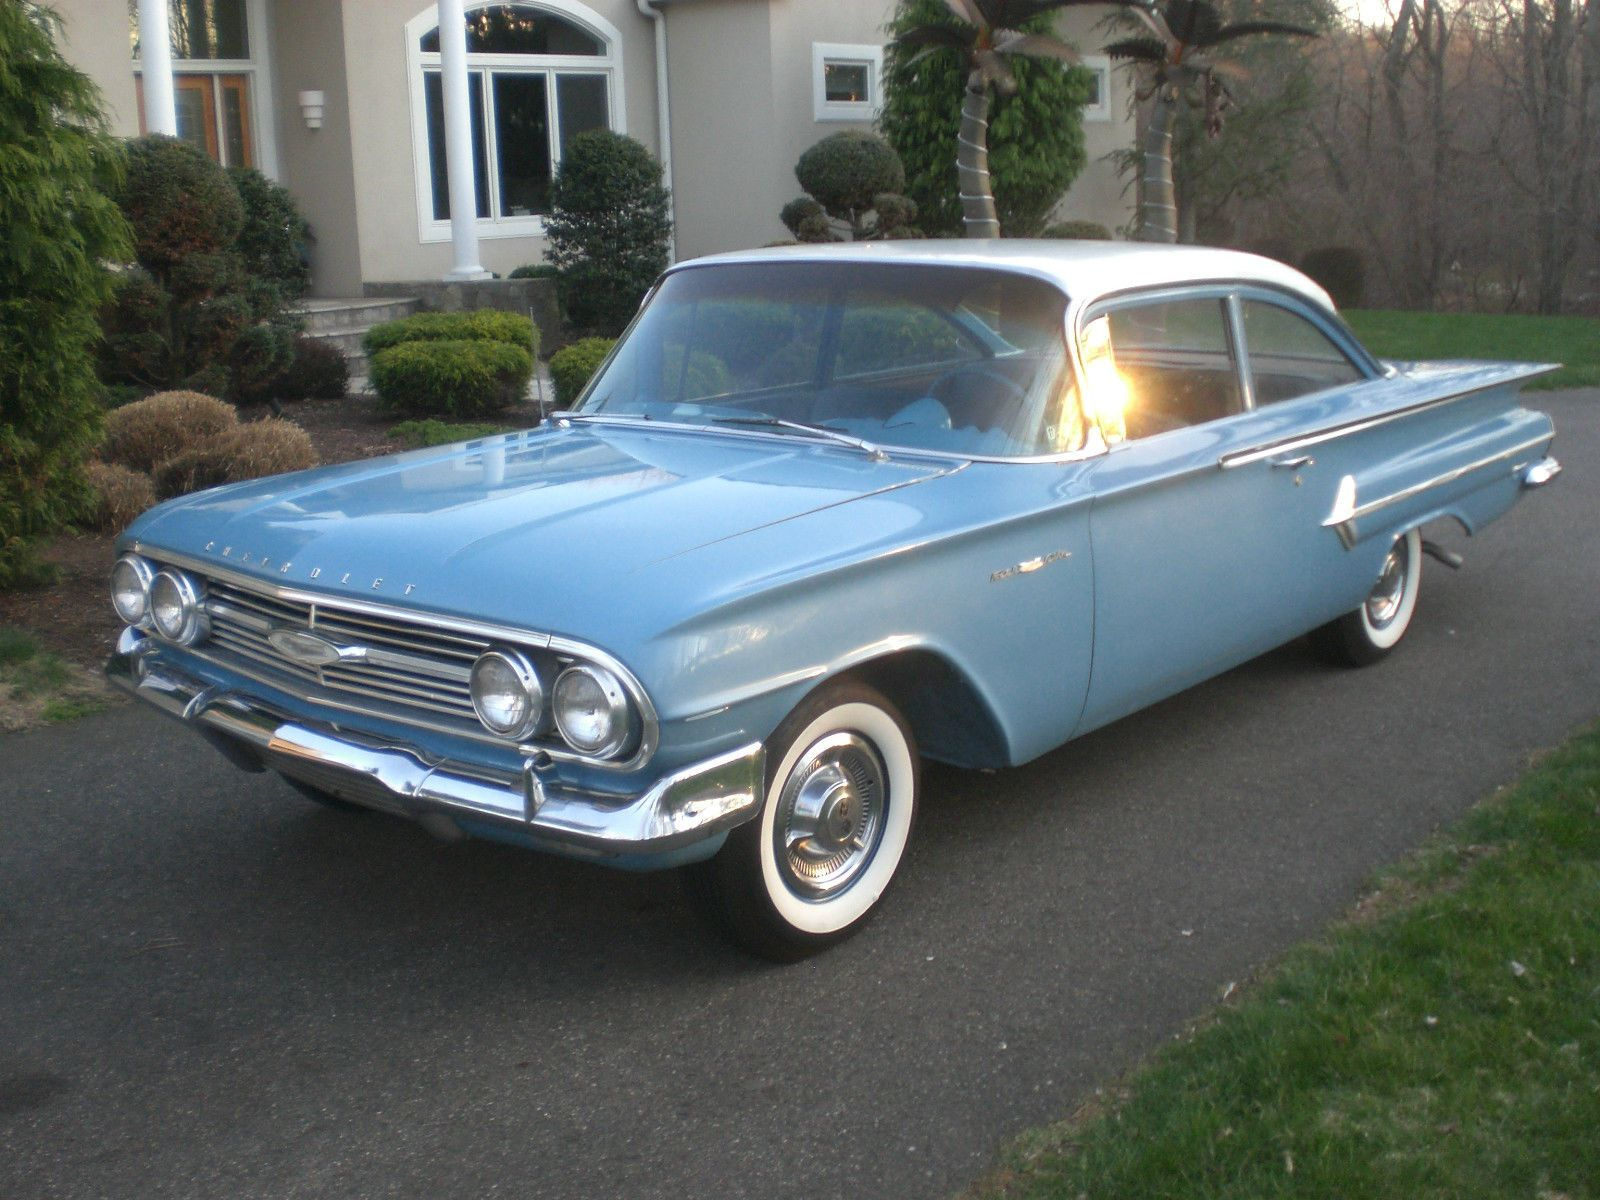 Beau 1960 Chevrolet Biscayne 2 Door Sedan Maintenance/restoration Of Old/vintage  Vehicles: